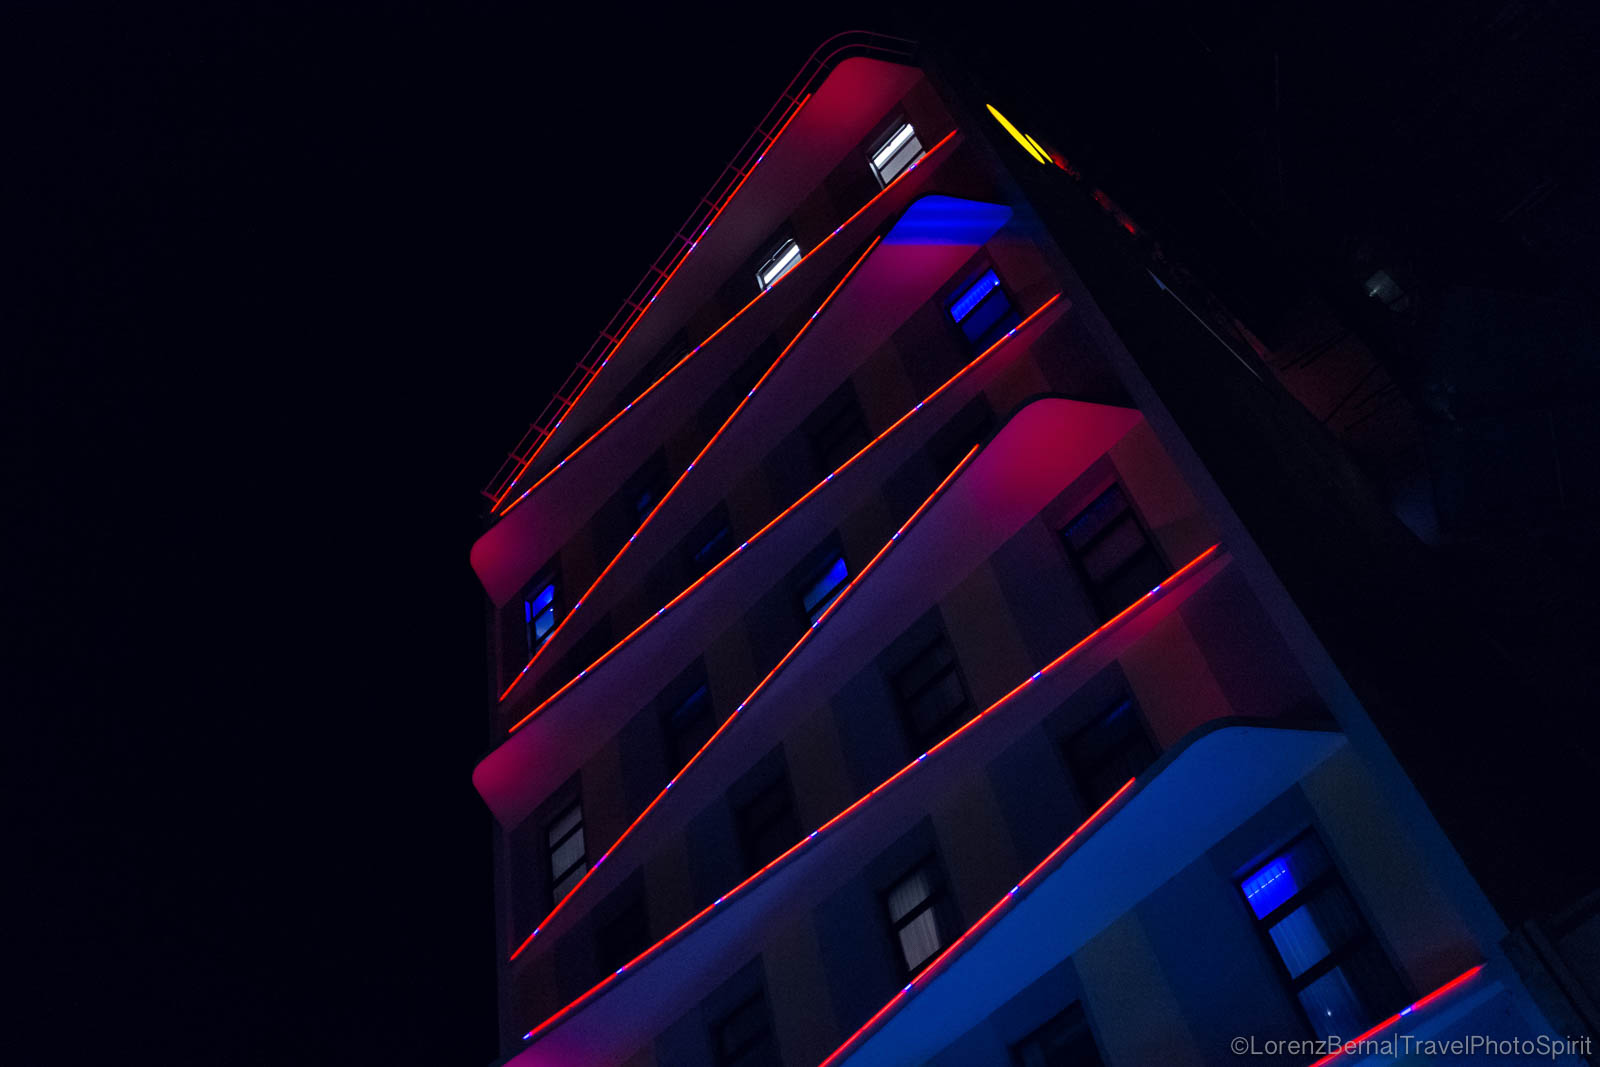 Design Hotel lights in the night, Phnom Penh, Cambodia